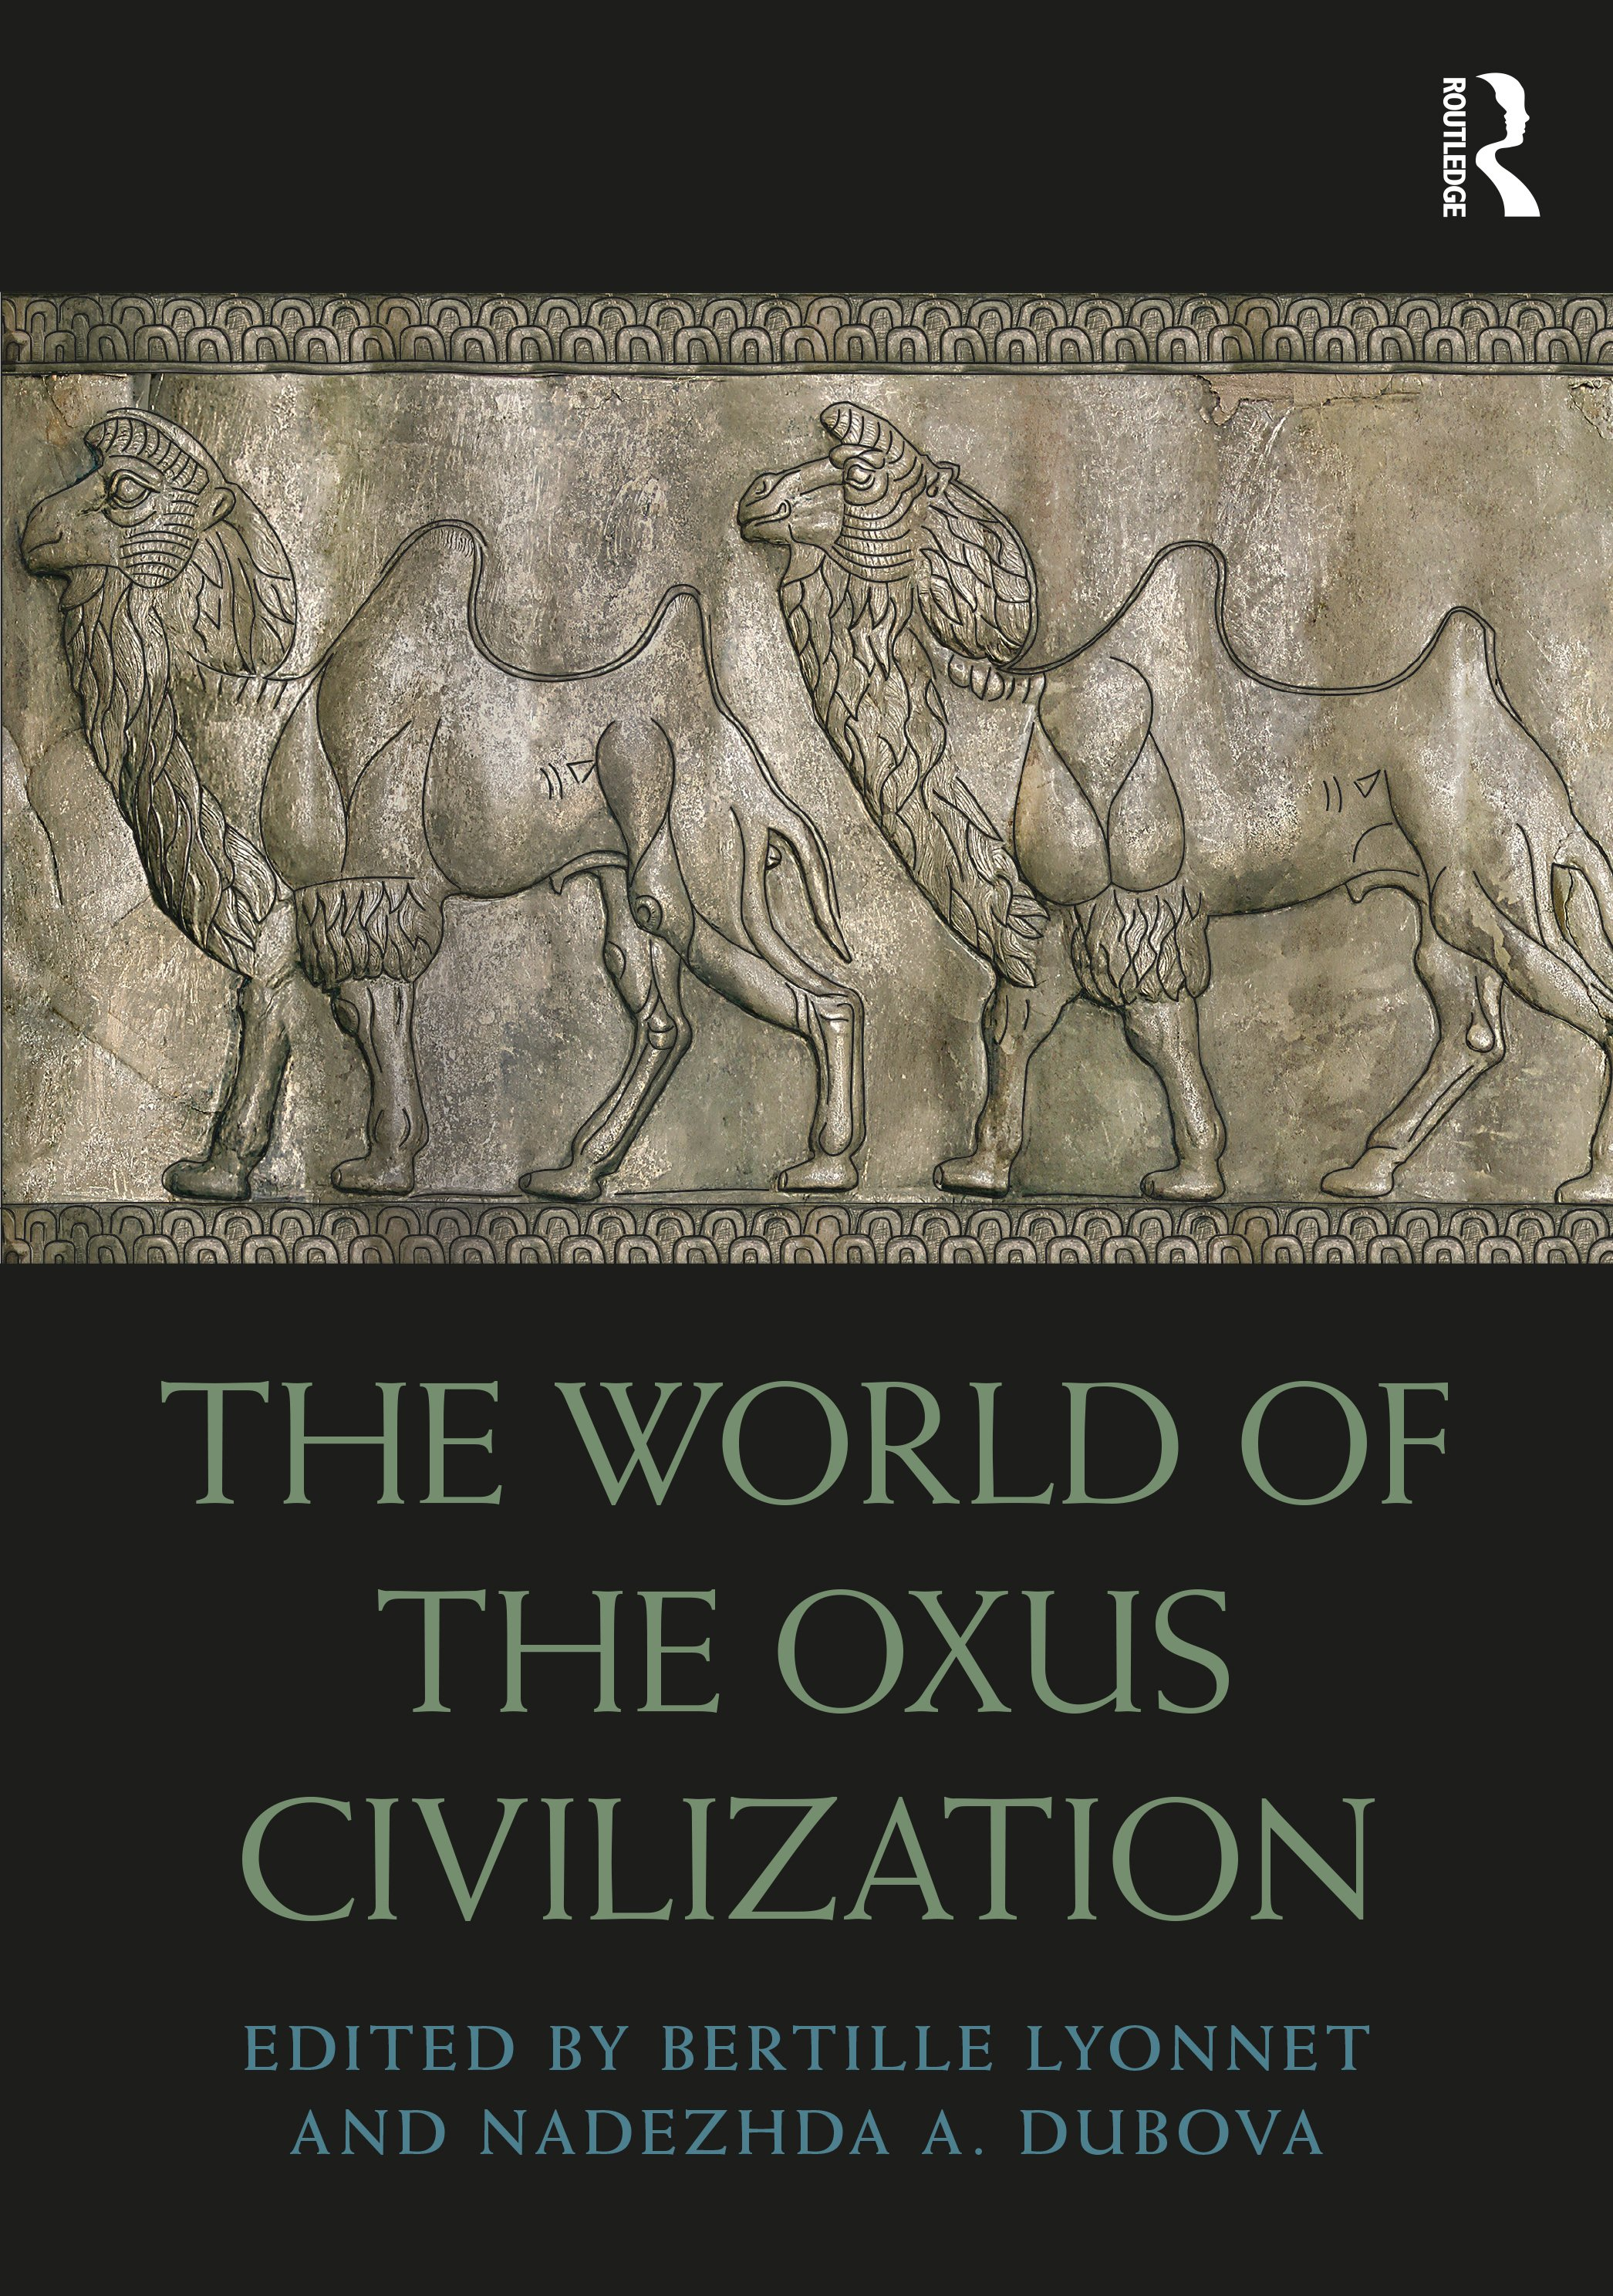 The World of the Oxus Civilization book cover